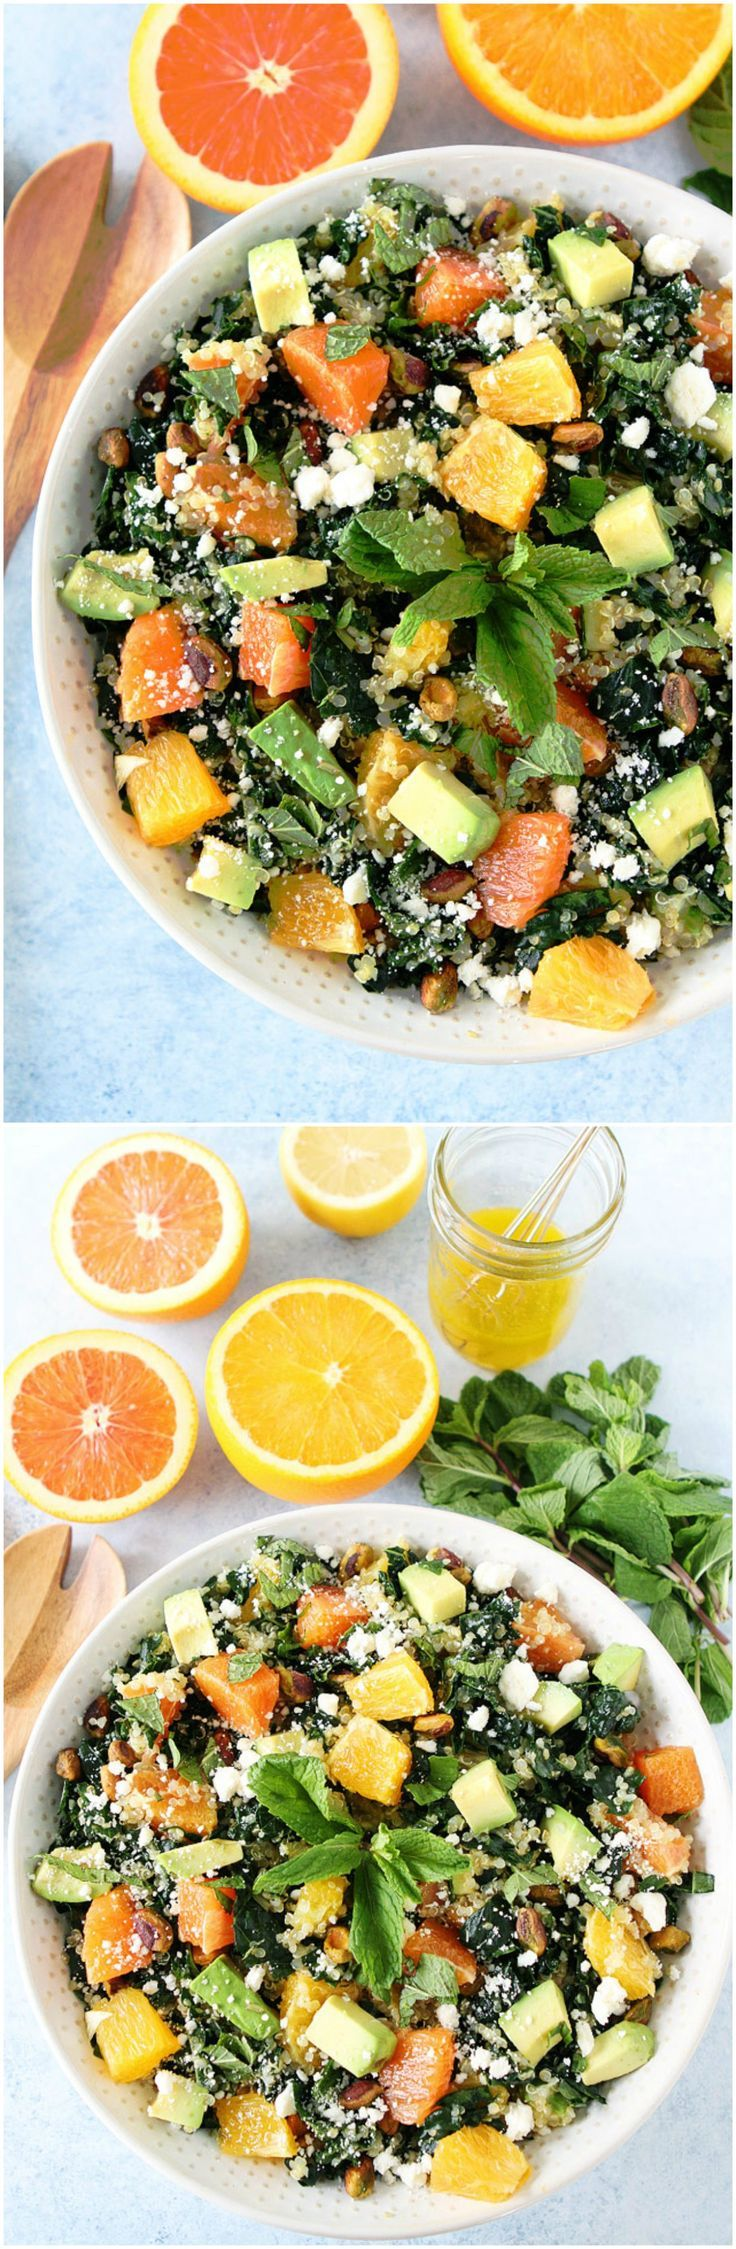 Orange, Avocado, and Kale Quinoa Salad Recipe on twopeasandtheirpod.com This healthy and refreshing salad is full of flavor! You will love the burst of citrus!